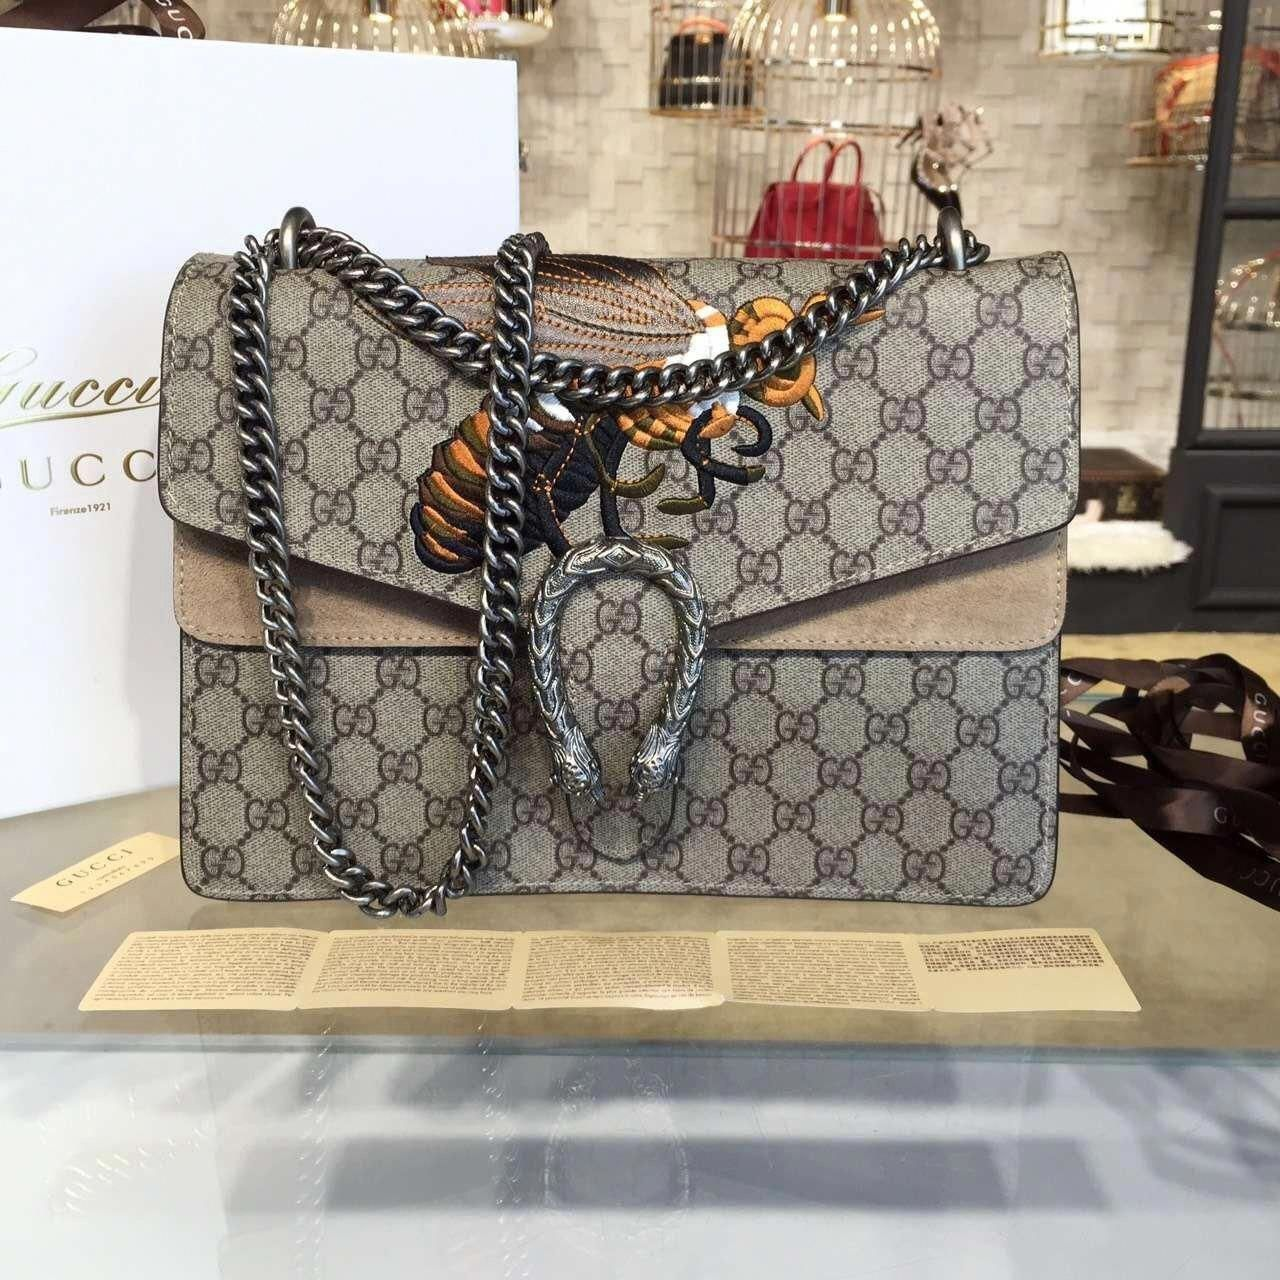 de6f2b8336a Gucci Dionysus GG Supreme Canvas Shoulder Large Bag with Bee Embroidery Fall  Winter 2016 Collection